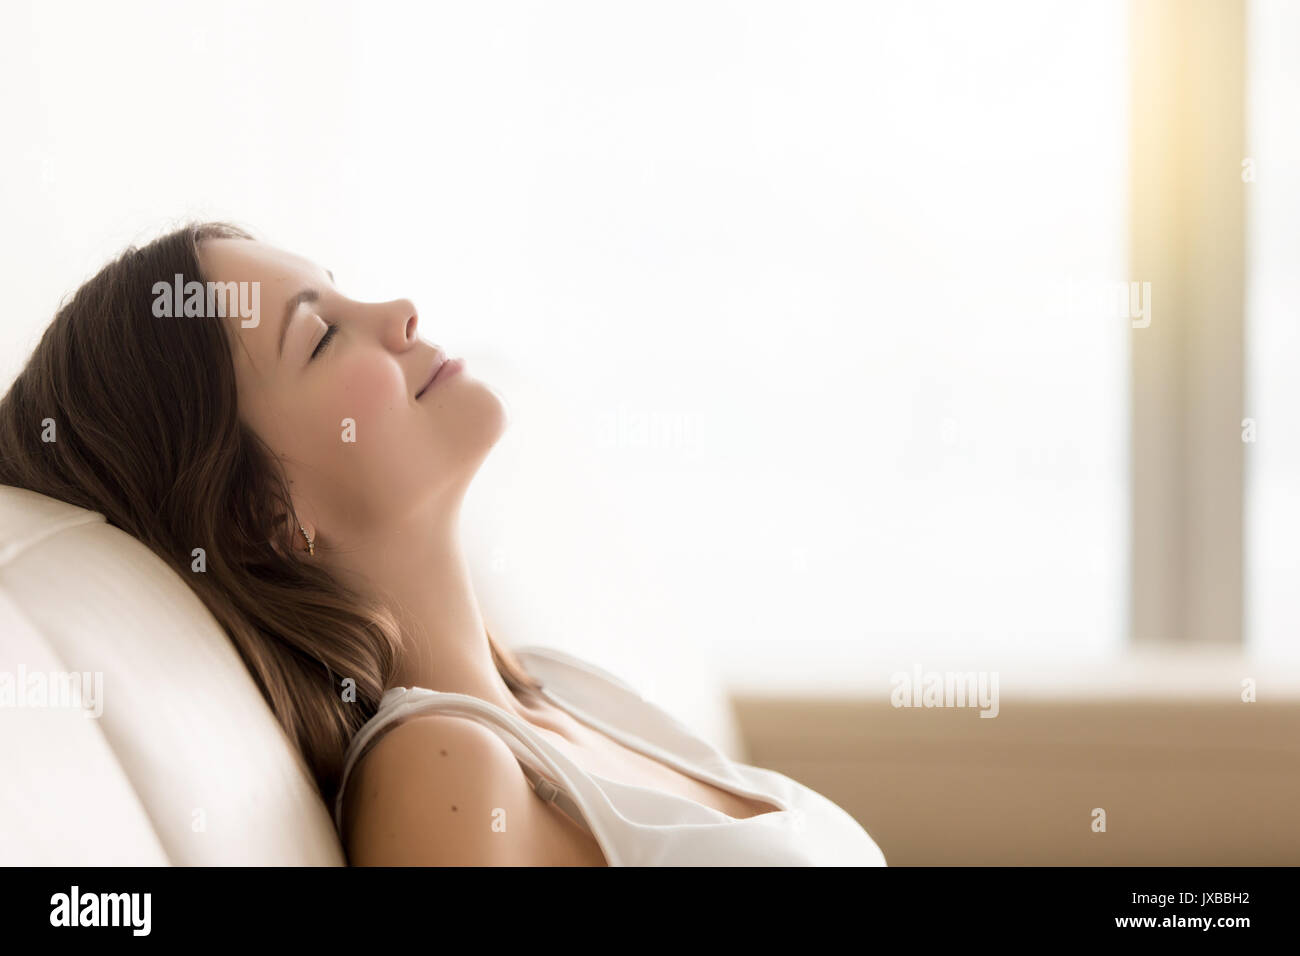 Relaxed young woman enjoying rest on comfortable sofa, copy spac - Stock Image